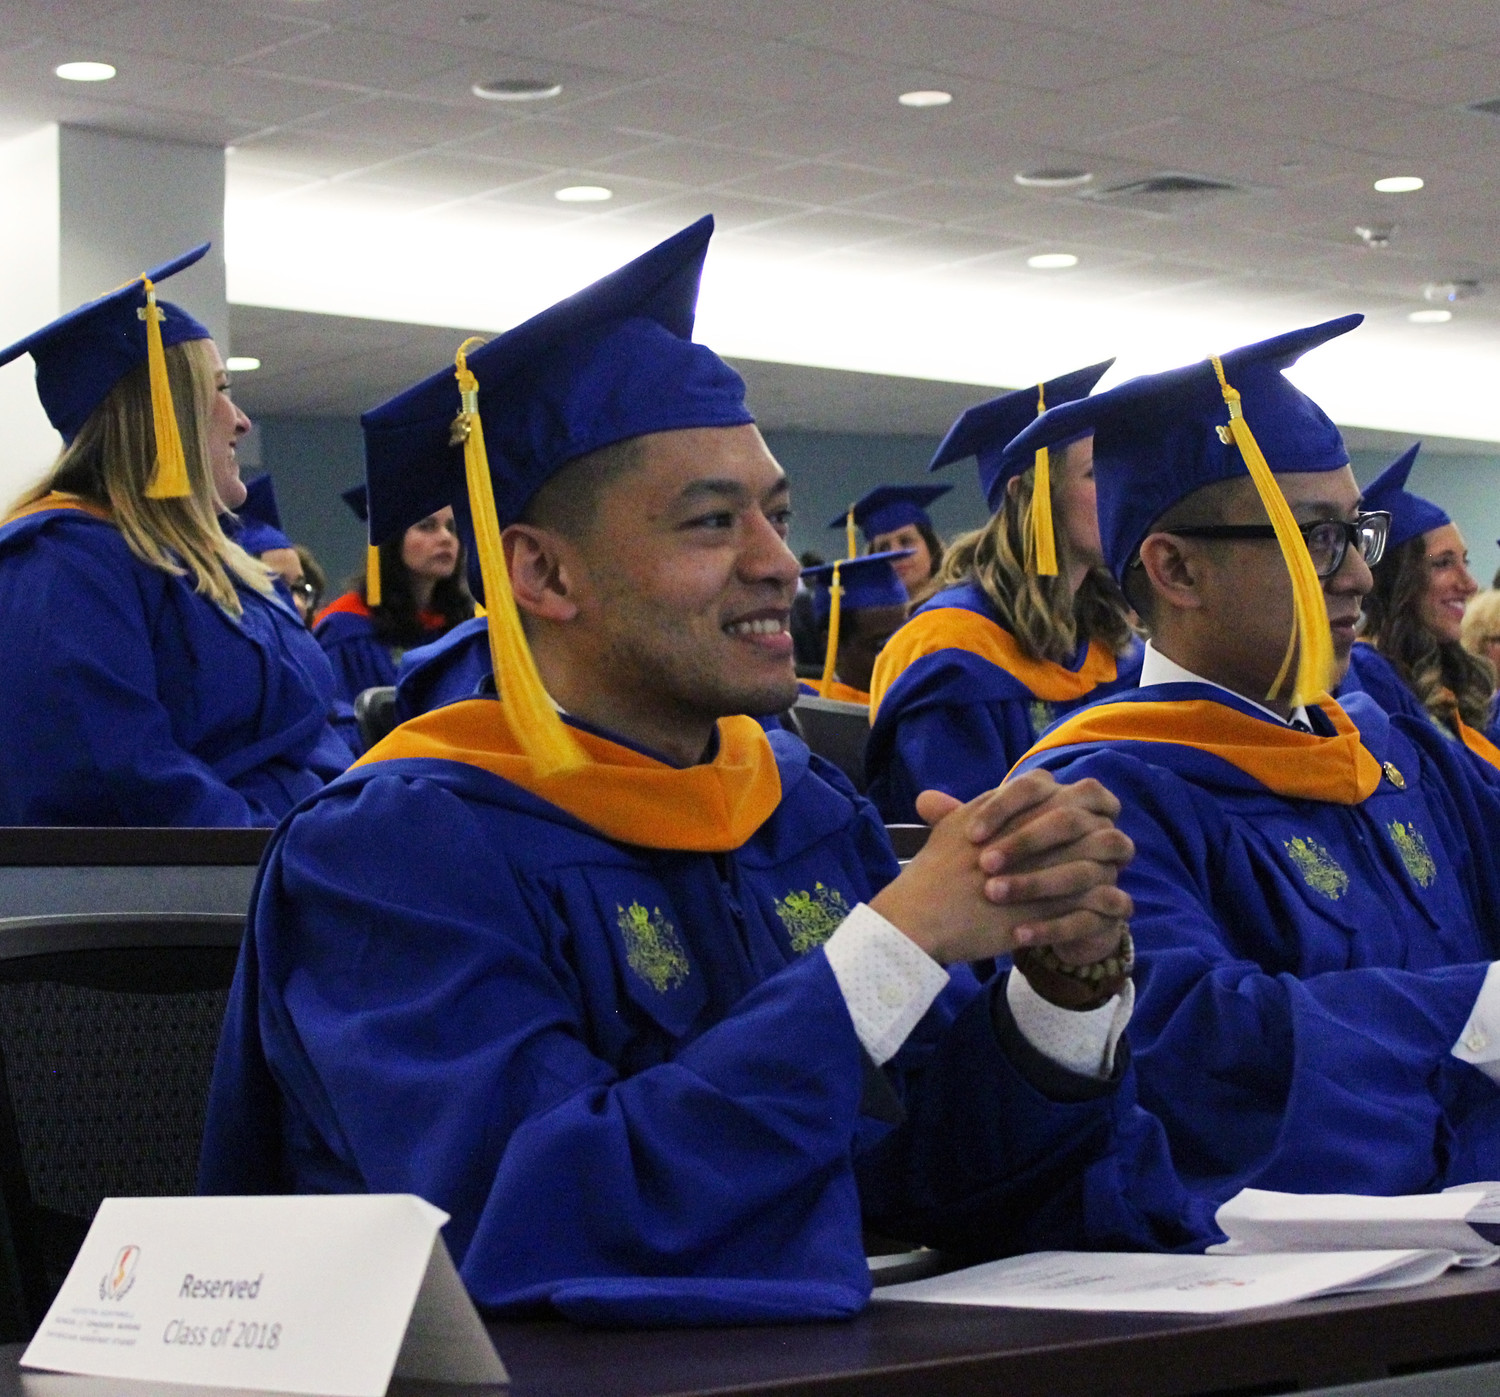 Christian Velez, 28, of East Meadow, is one of the graduates of Hofstra University and Northwell Health's nursing program.